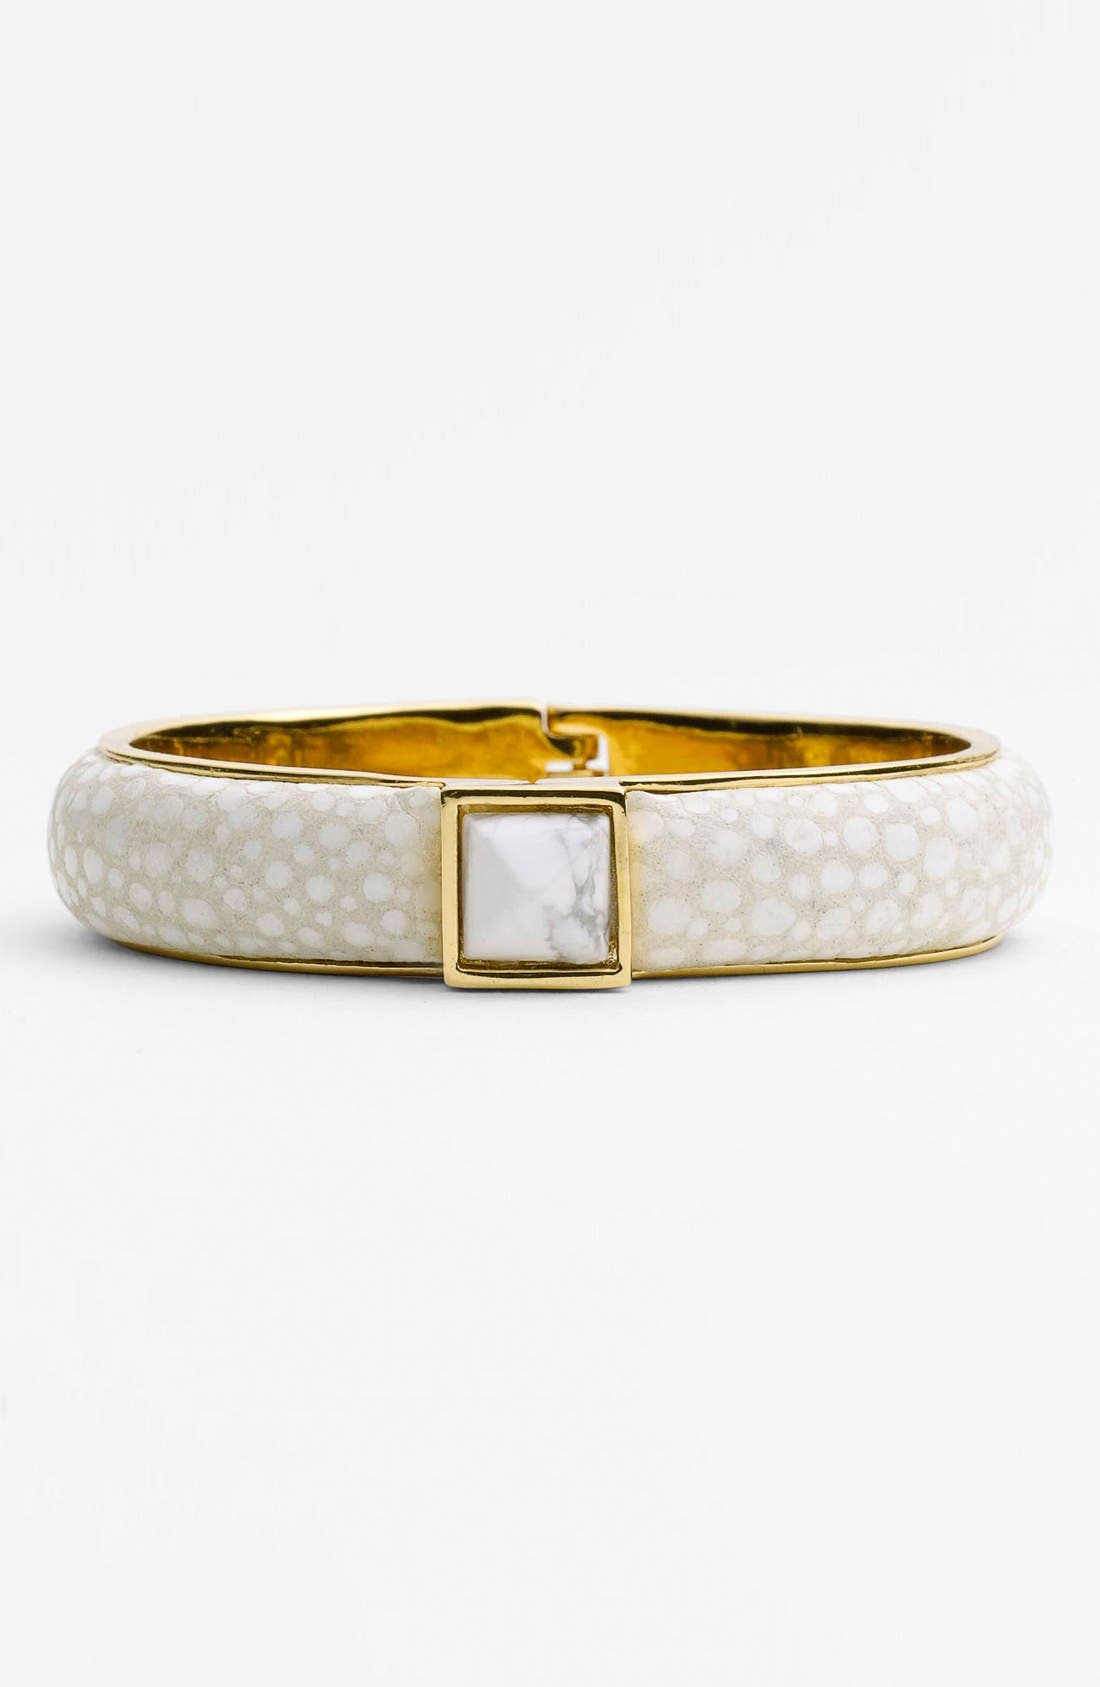 Alternate Image 1 Selected - Vince Camuto 'Bombe' Hinged Bangle